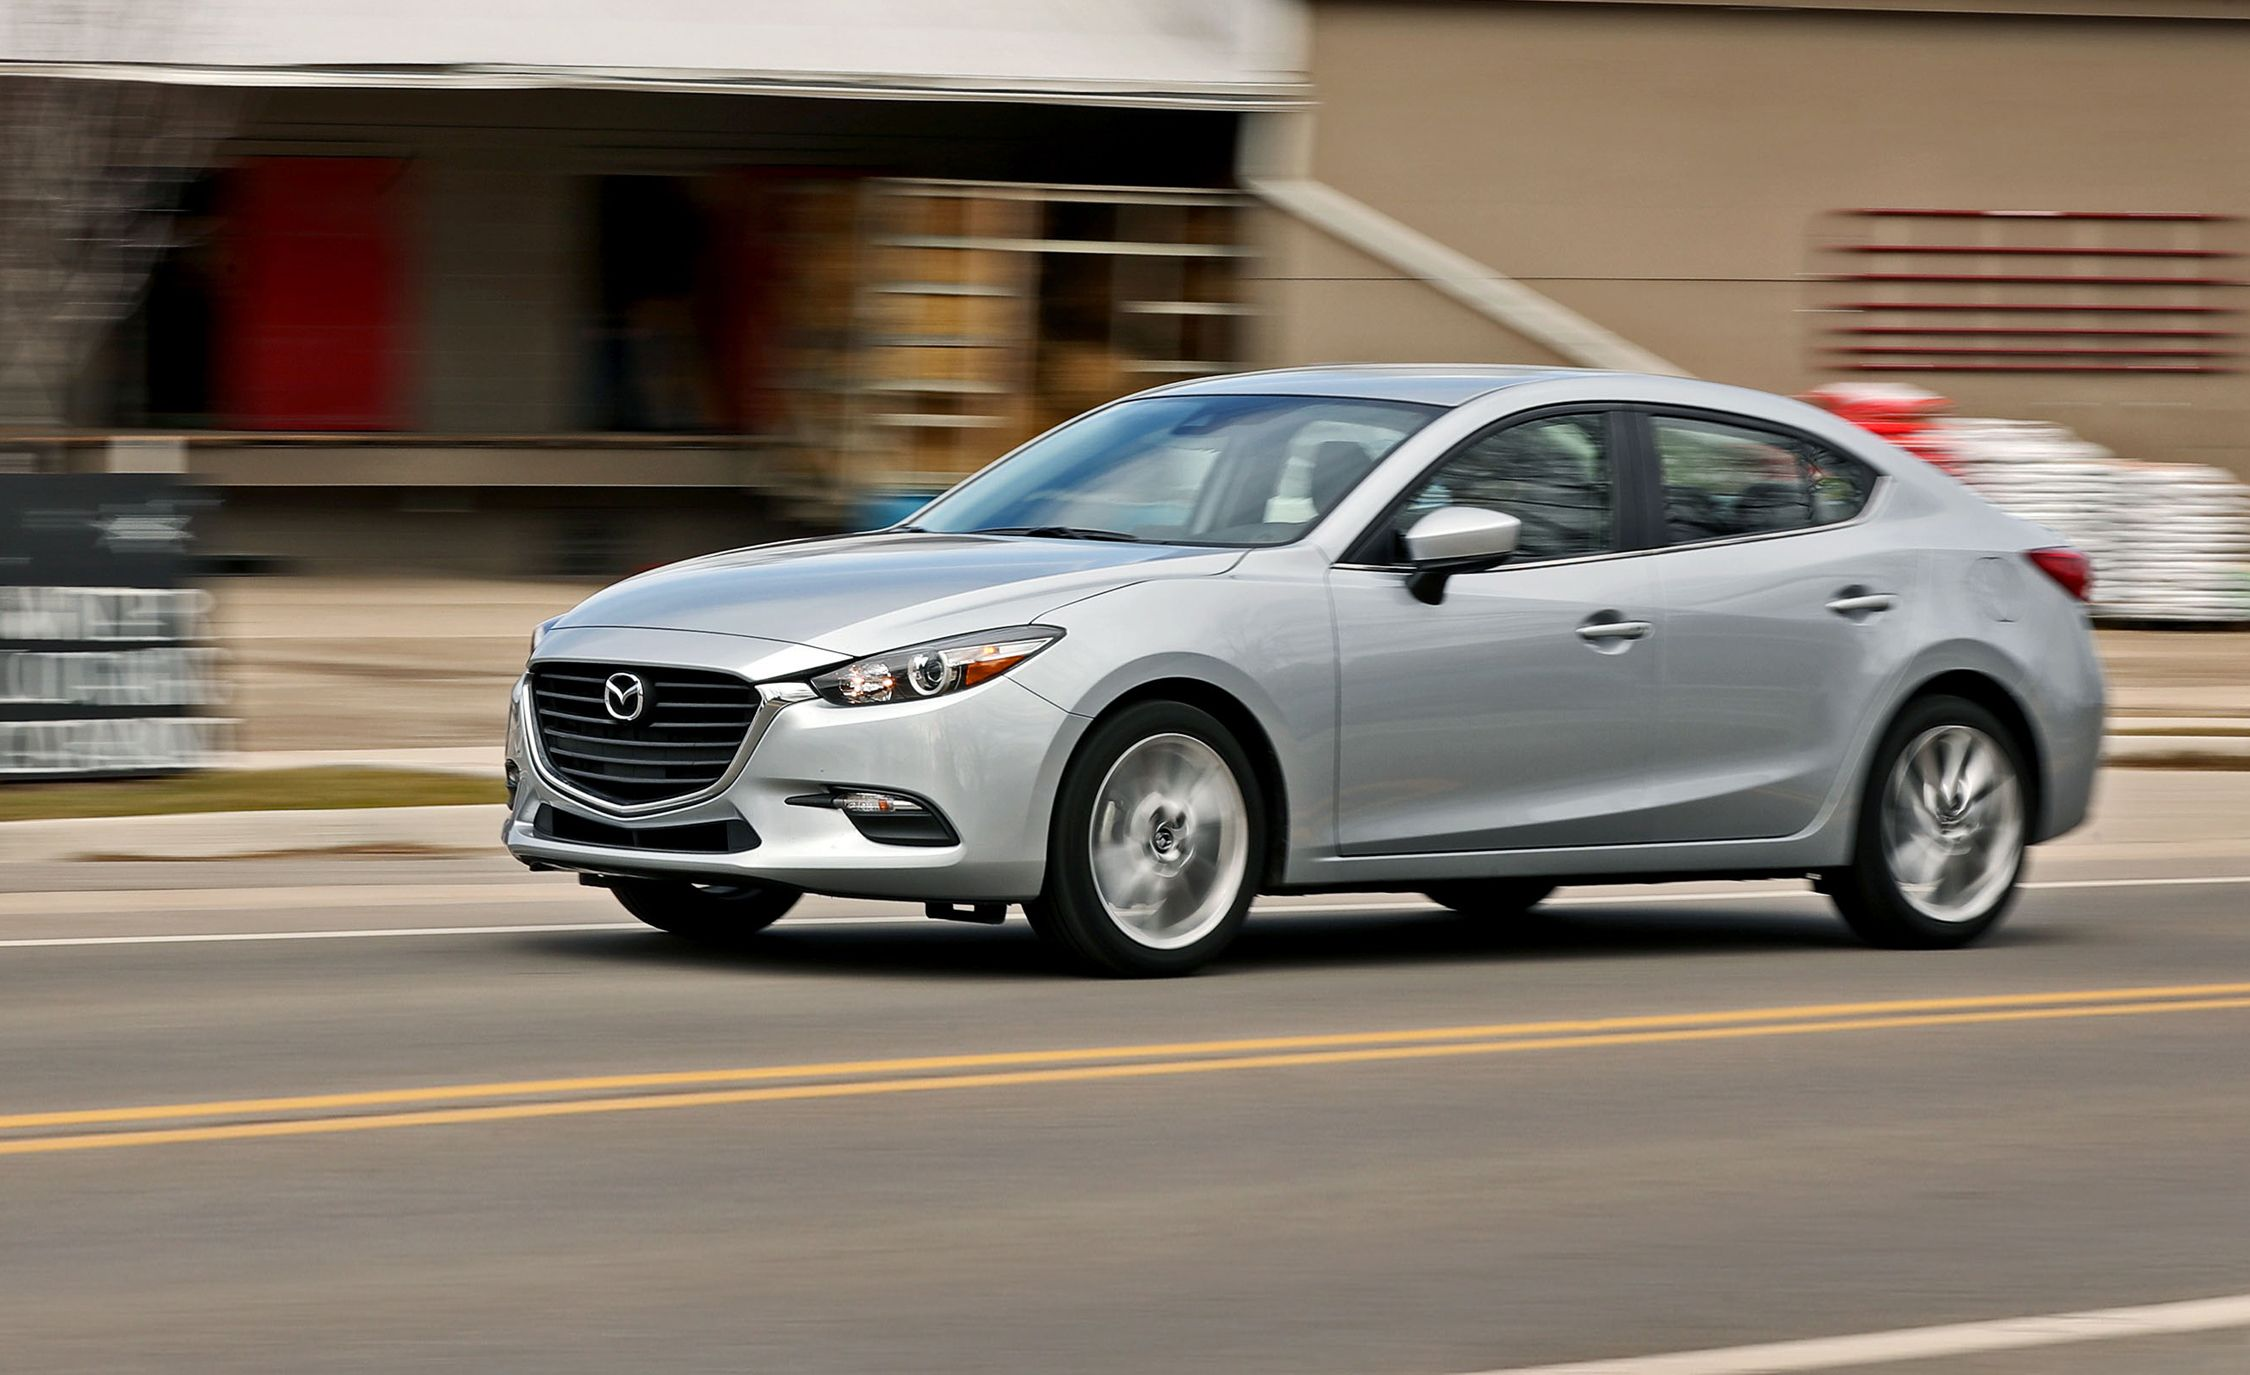 2014 Mazda 3 Bose Wiring Diagram : 2018 mazda 3 in depth model review car and driver